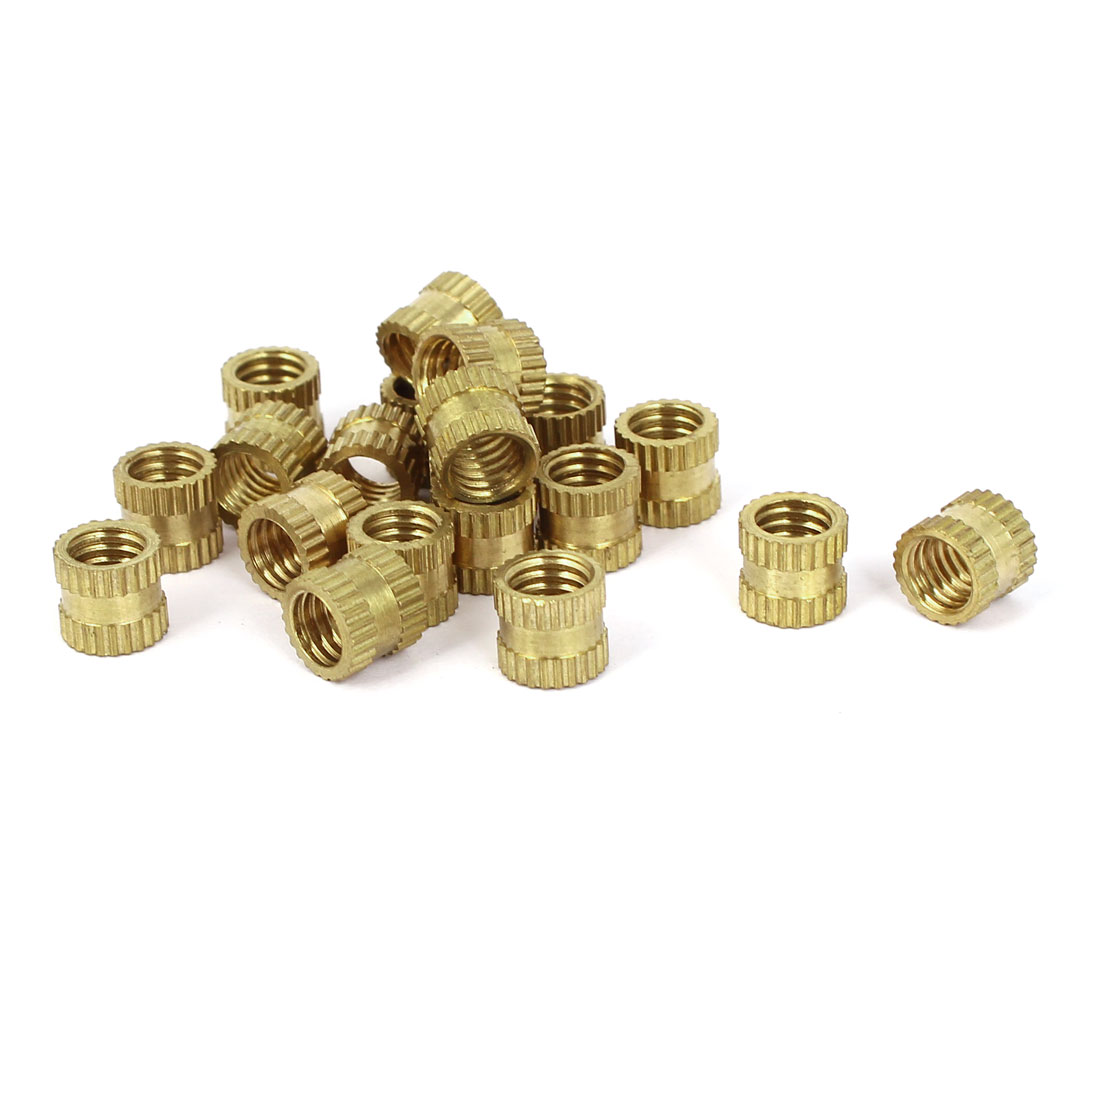 M6x7mm 8mm OD Brass Embedded Knurled Insert Thumb Nuts 20pcs